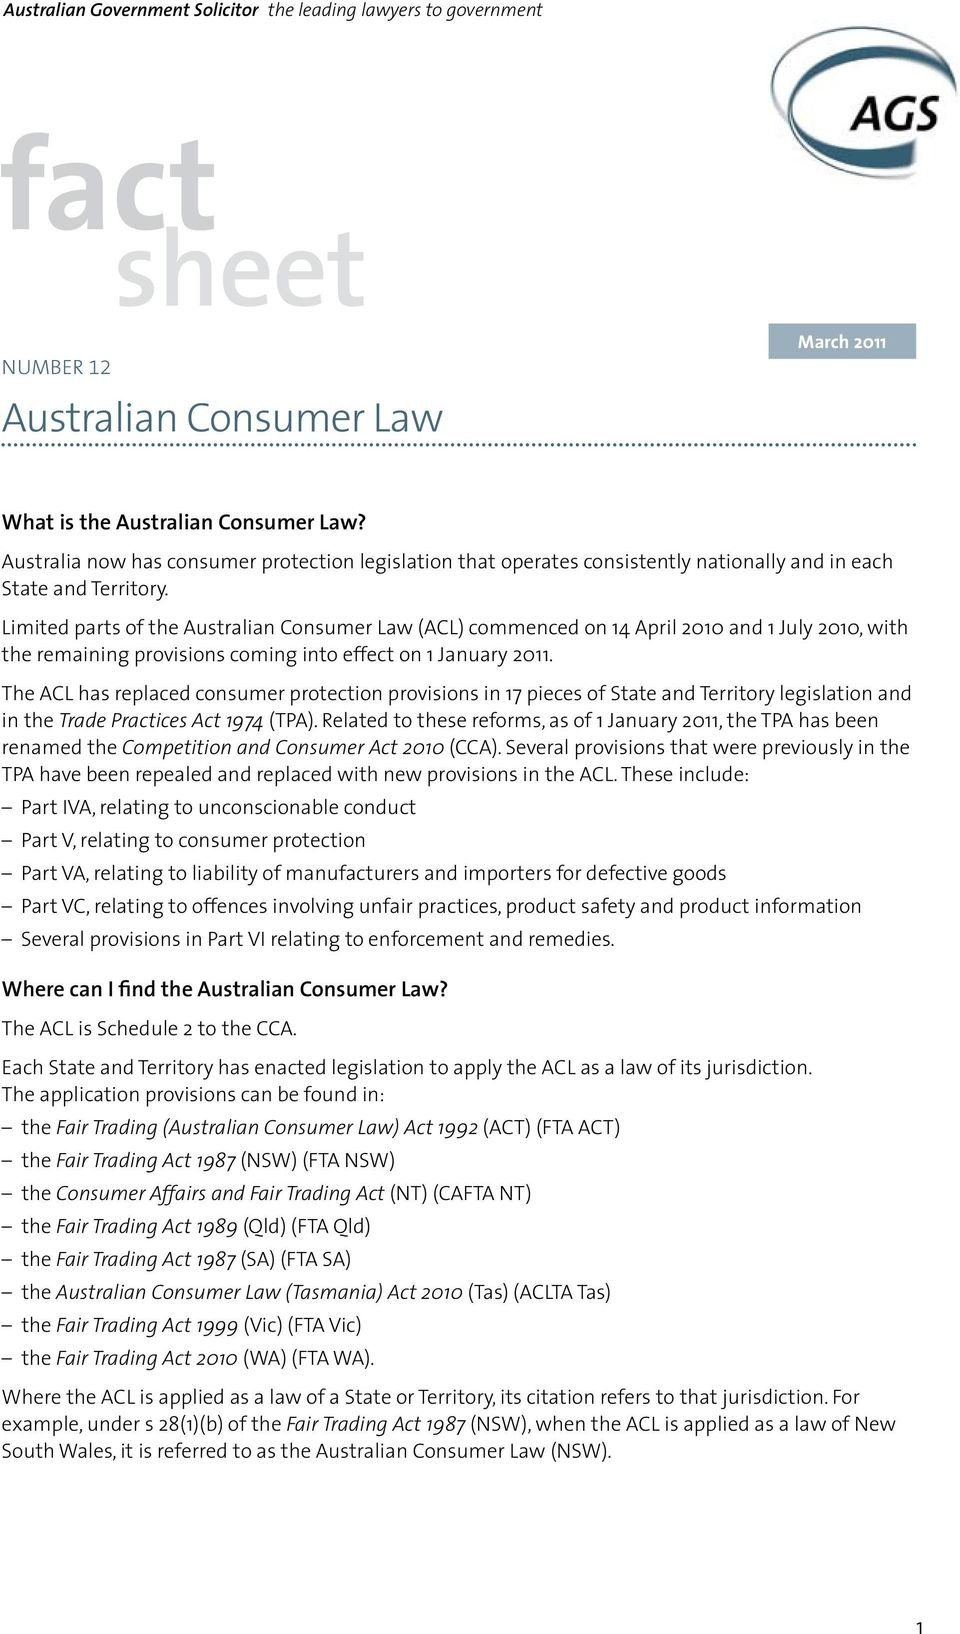 Limited parts of the Australian Consumer Law (ACL) commenced on 14 April 2010 and 1 July 2010, with the remaining provisions coming into effect on 1 January 2011.